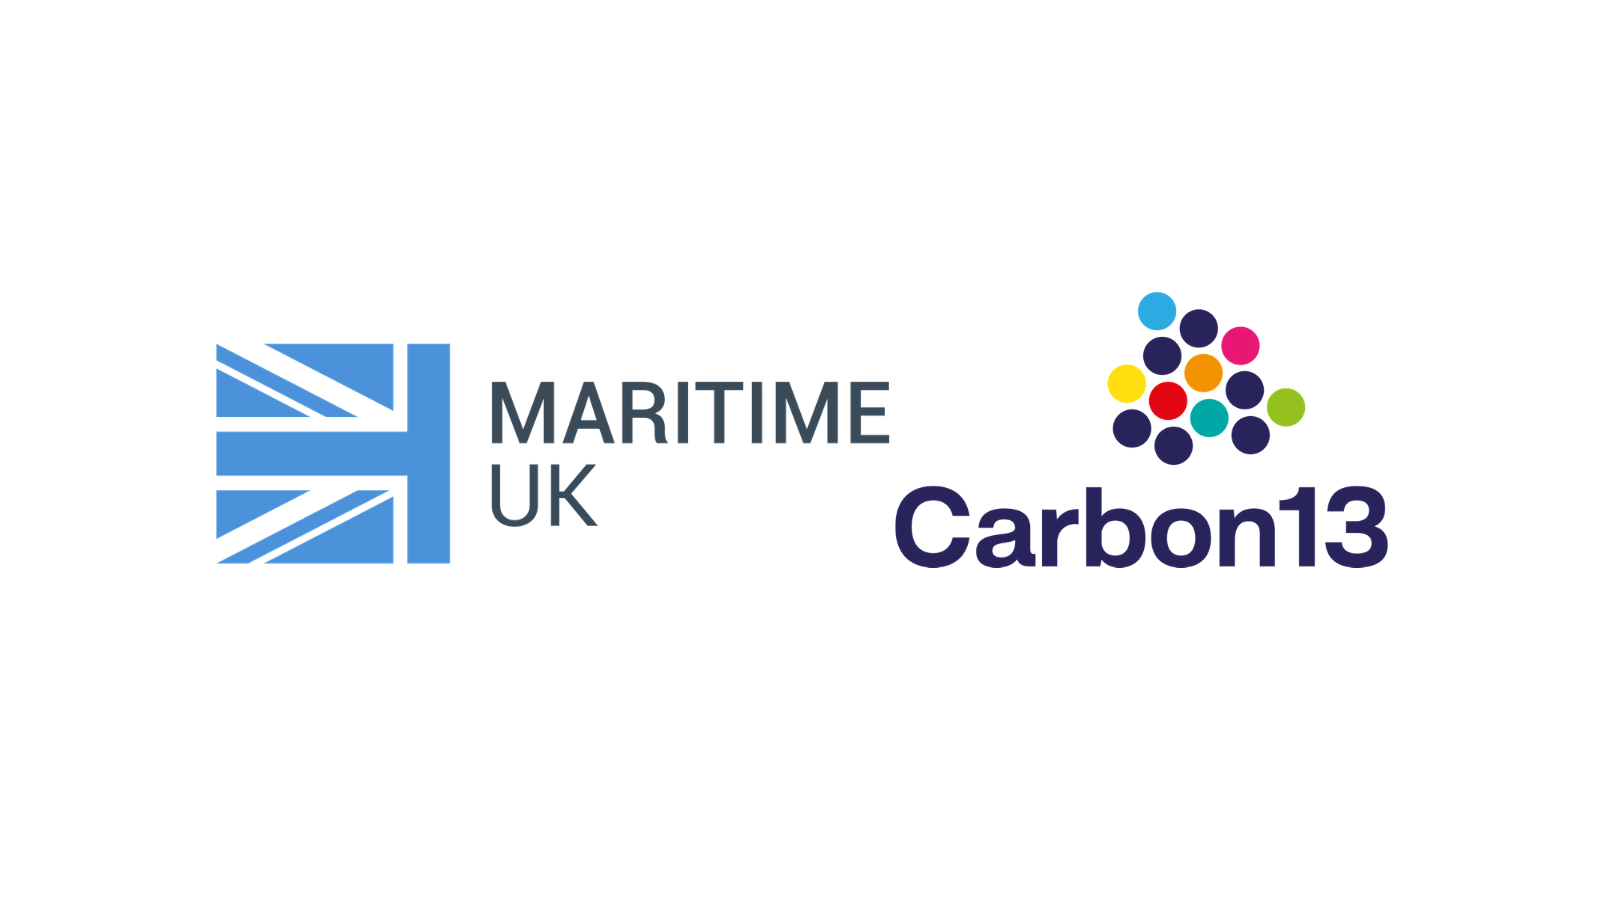 Maritime UK to work with Carbon13 to accelerate maritime decarbonisation